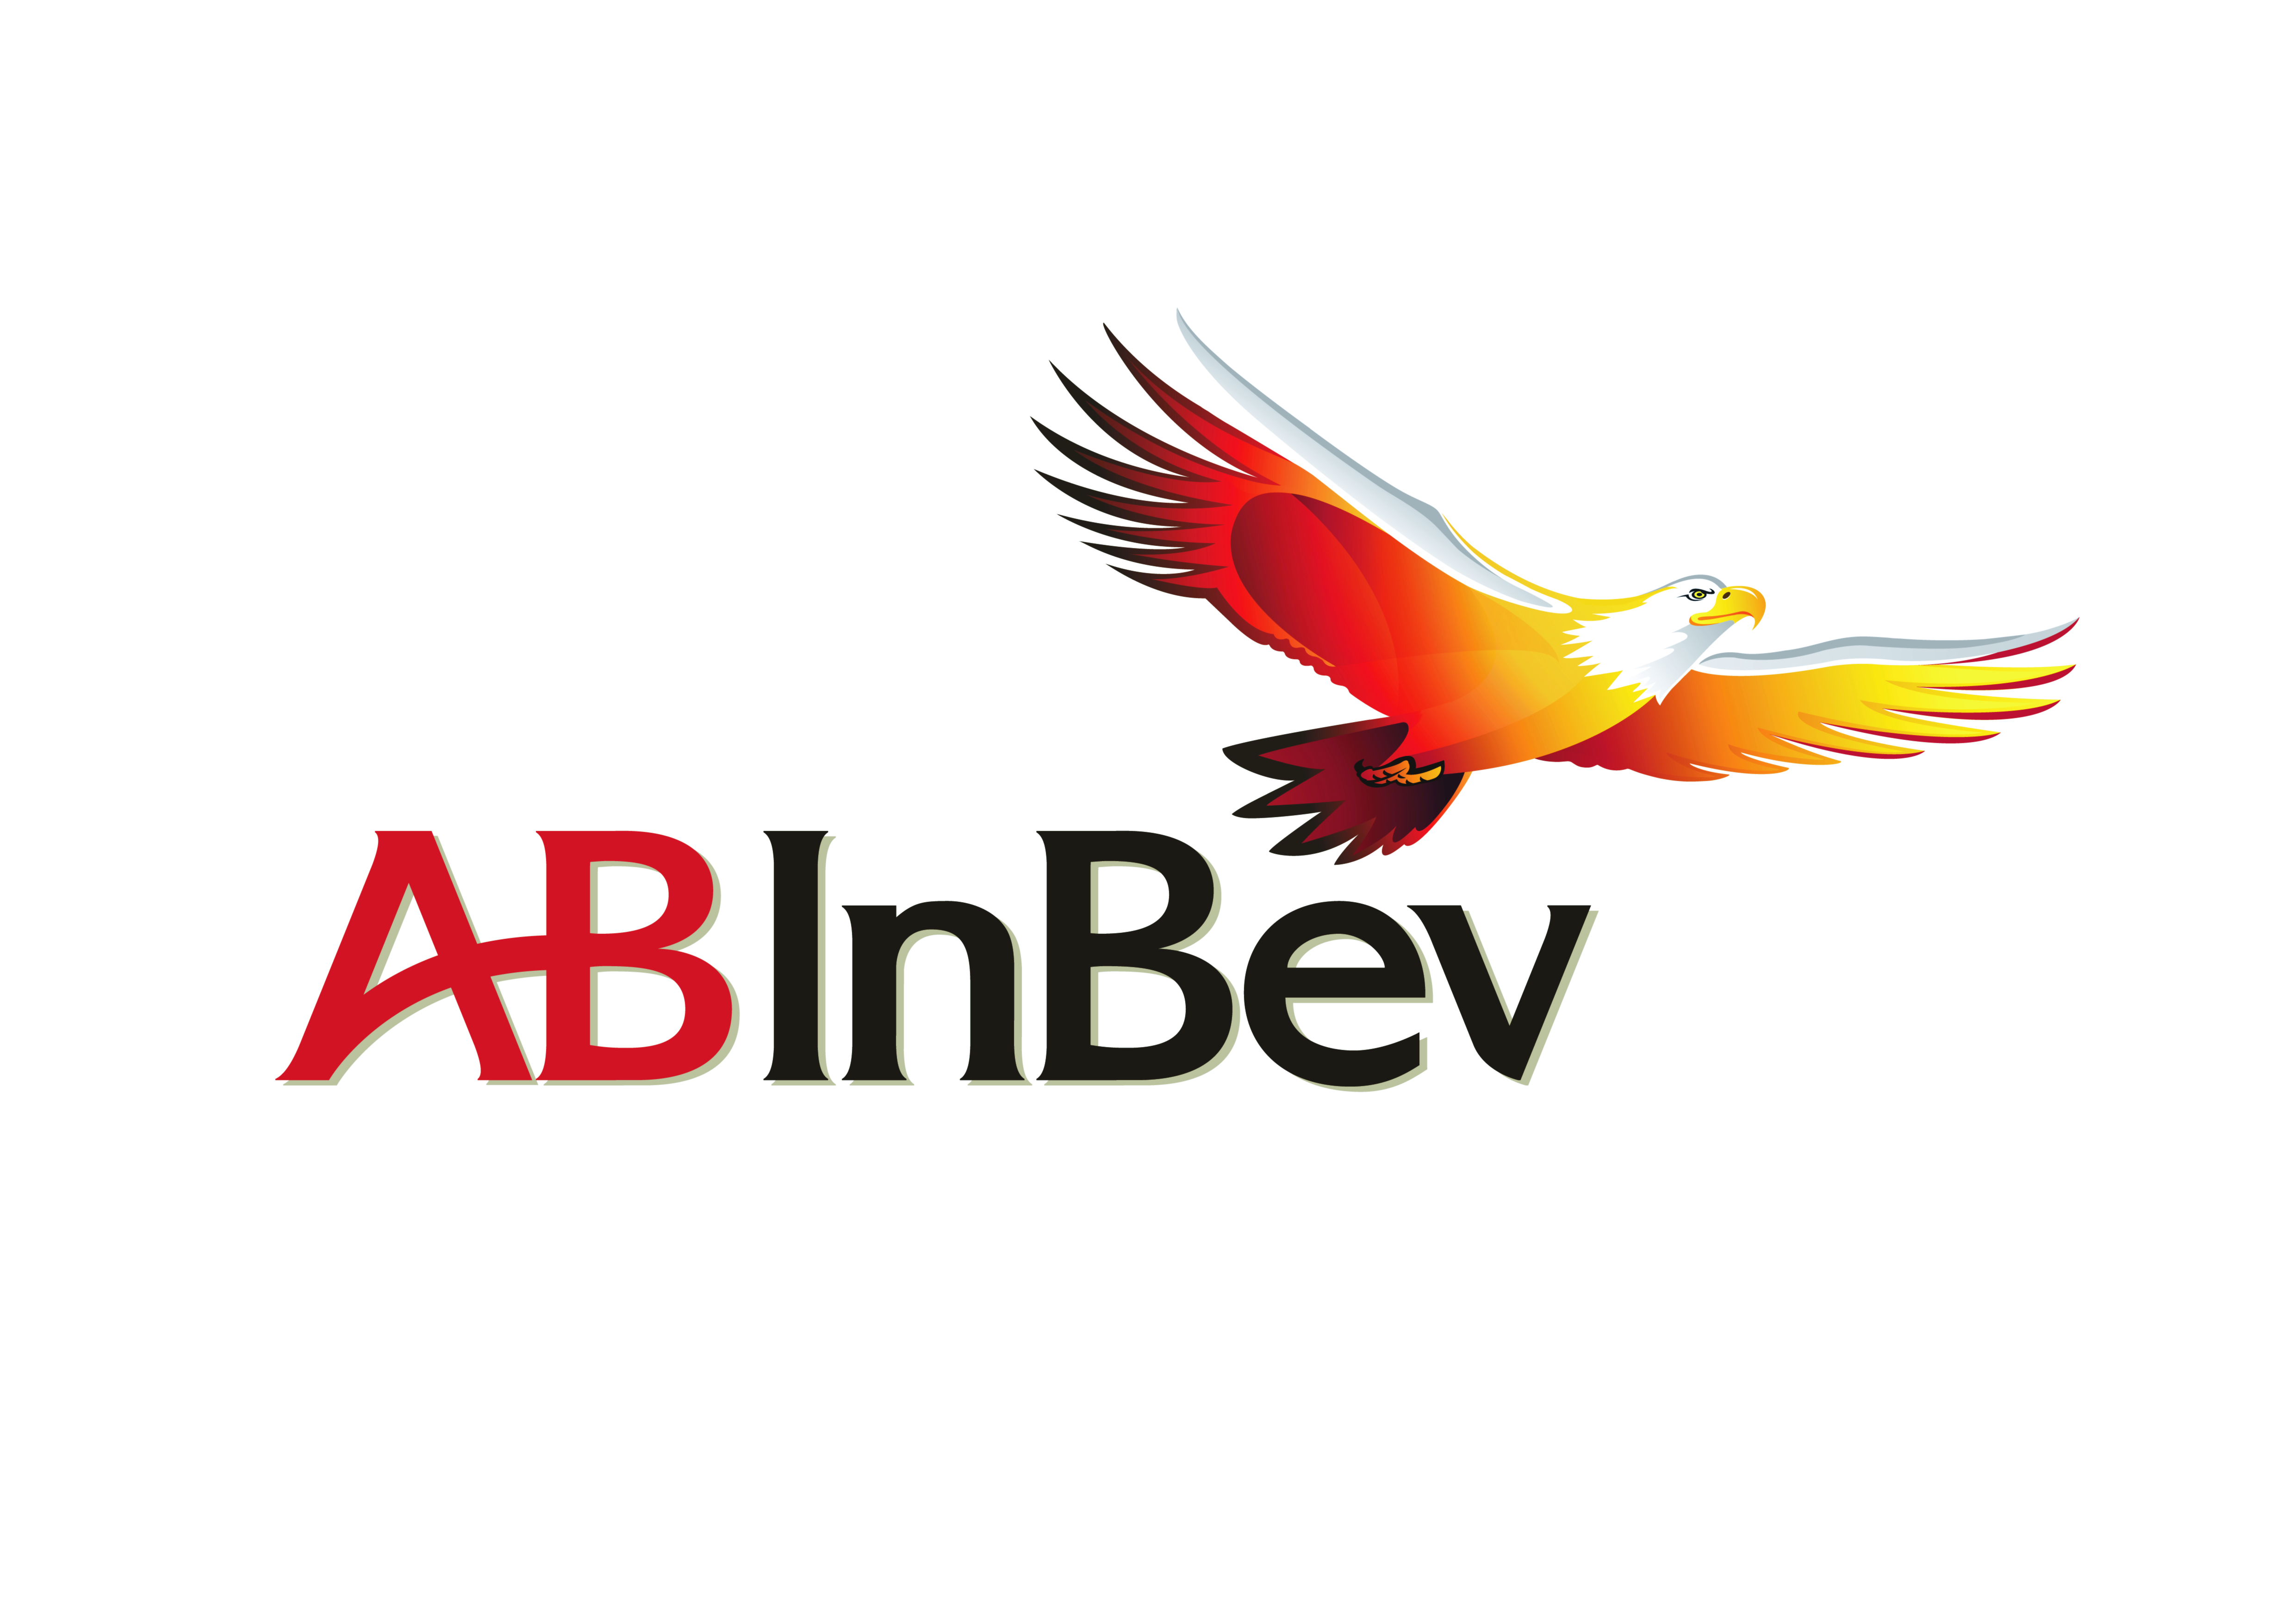 ab inbev 26012017 anheuser-busch inbev has missed the consensus estimates for revenue in all of the first three quarters of the fiscal year 2016, as a slowdown in crucial.